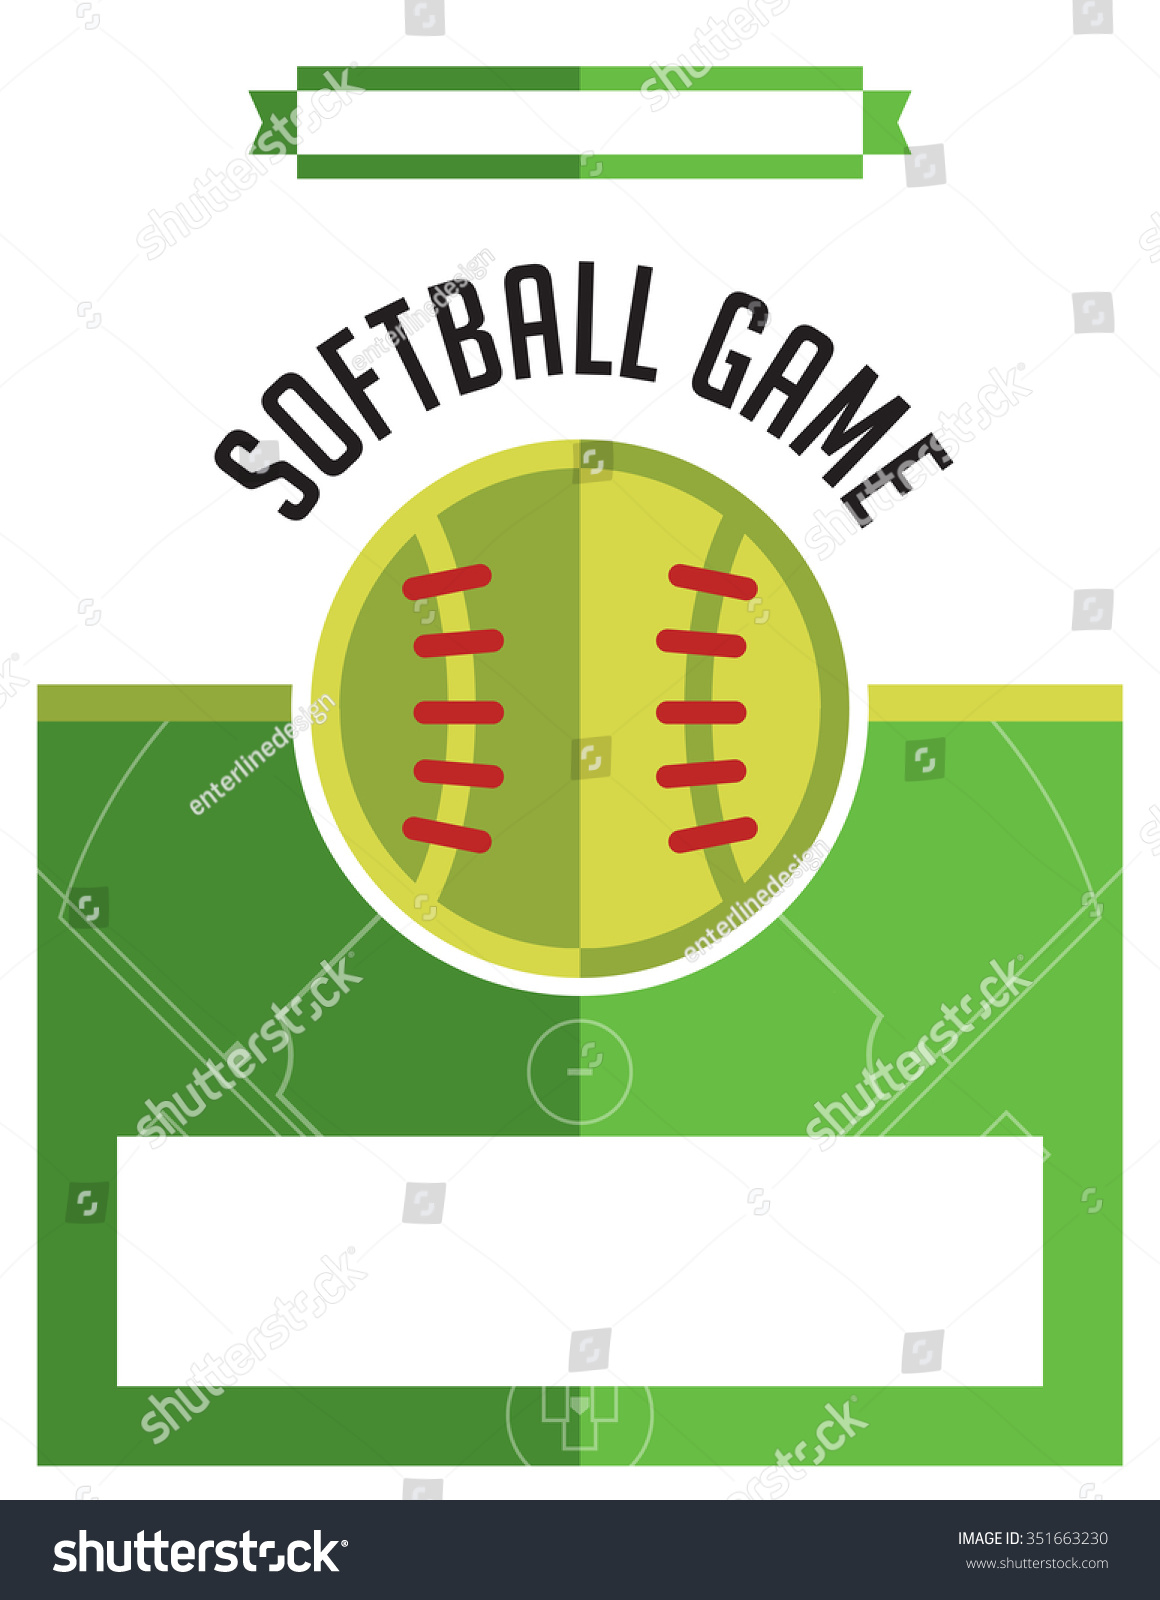 template flyer background softball game vector stock vector a template flyer background for a softball game vector eps 10